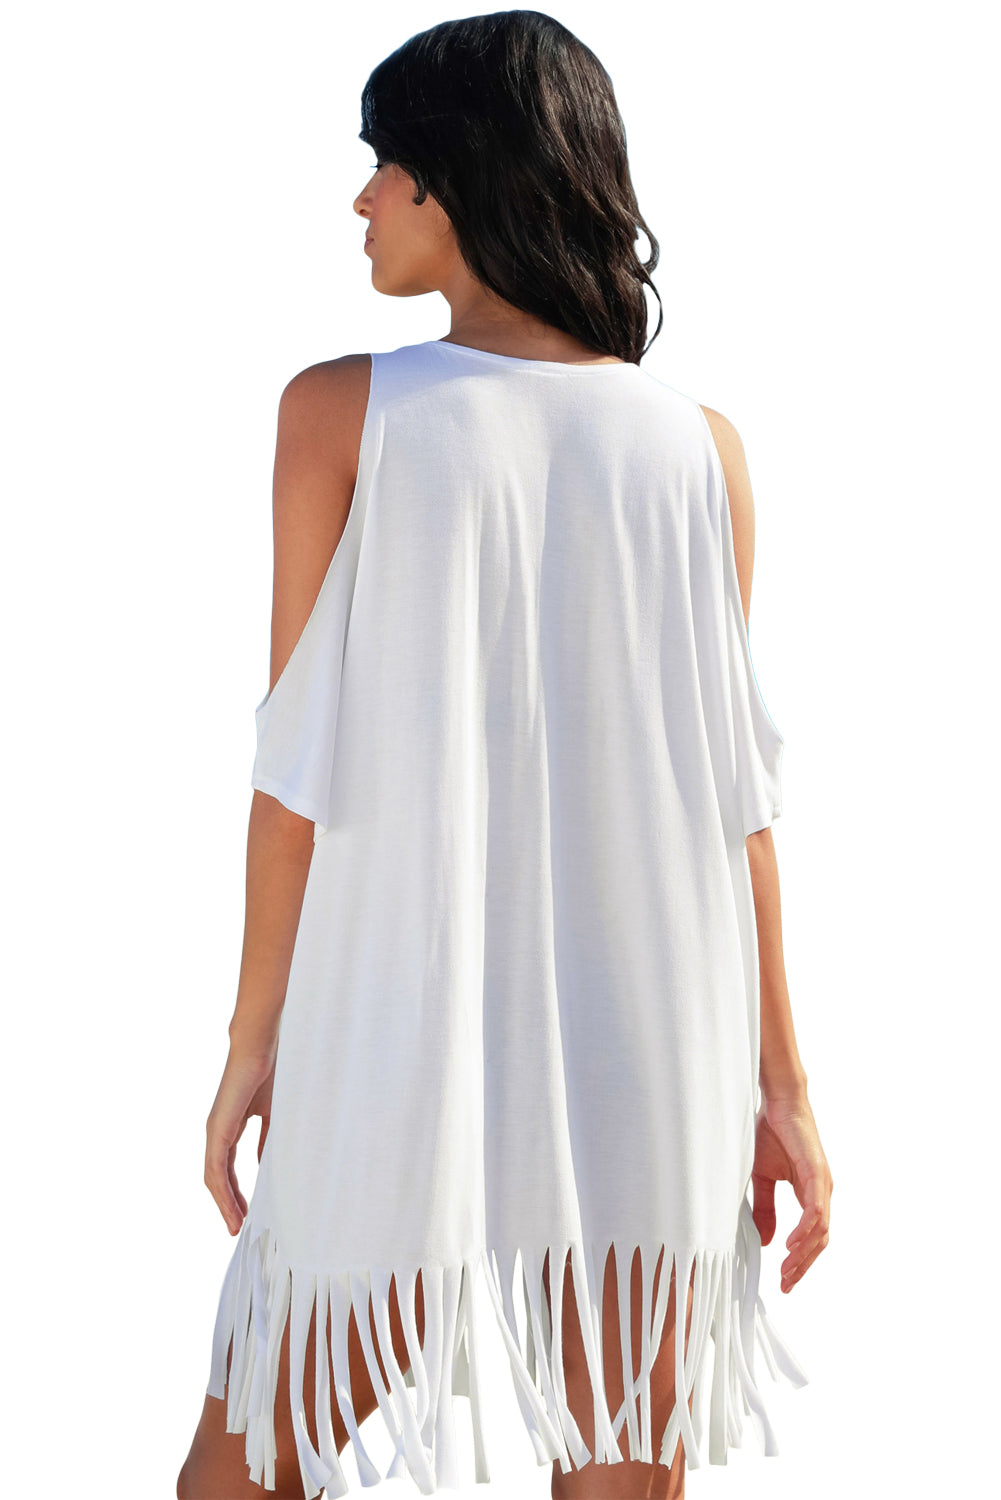 179d83d66d Sexy White Loose Fit Take me to the BEACH Cover up – SEXY AFFORDABLE ...